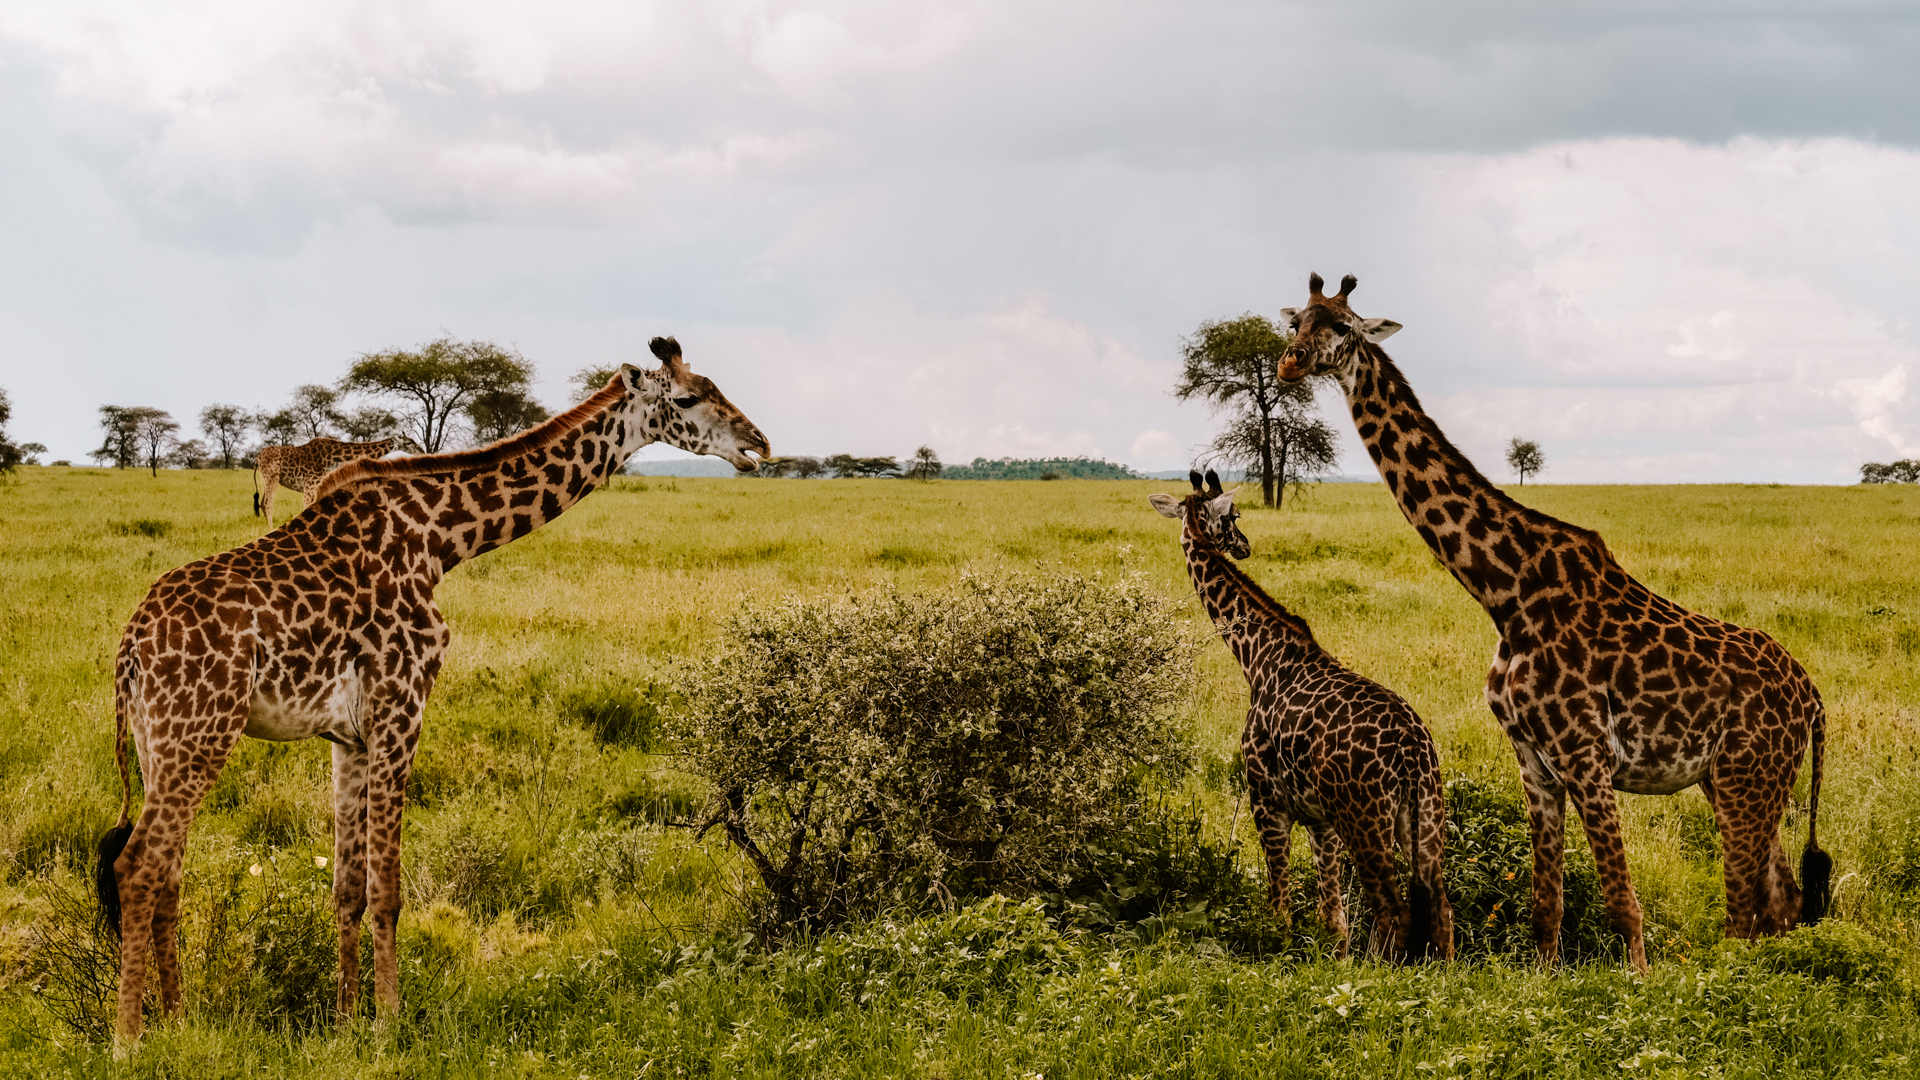 Looks like the little one is trying to reason with his parents in the Serengeti National Park, Tanzania